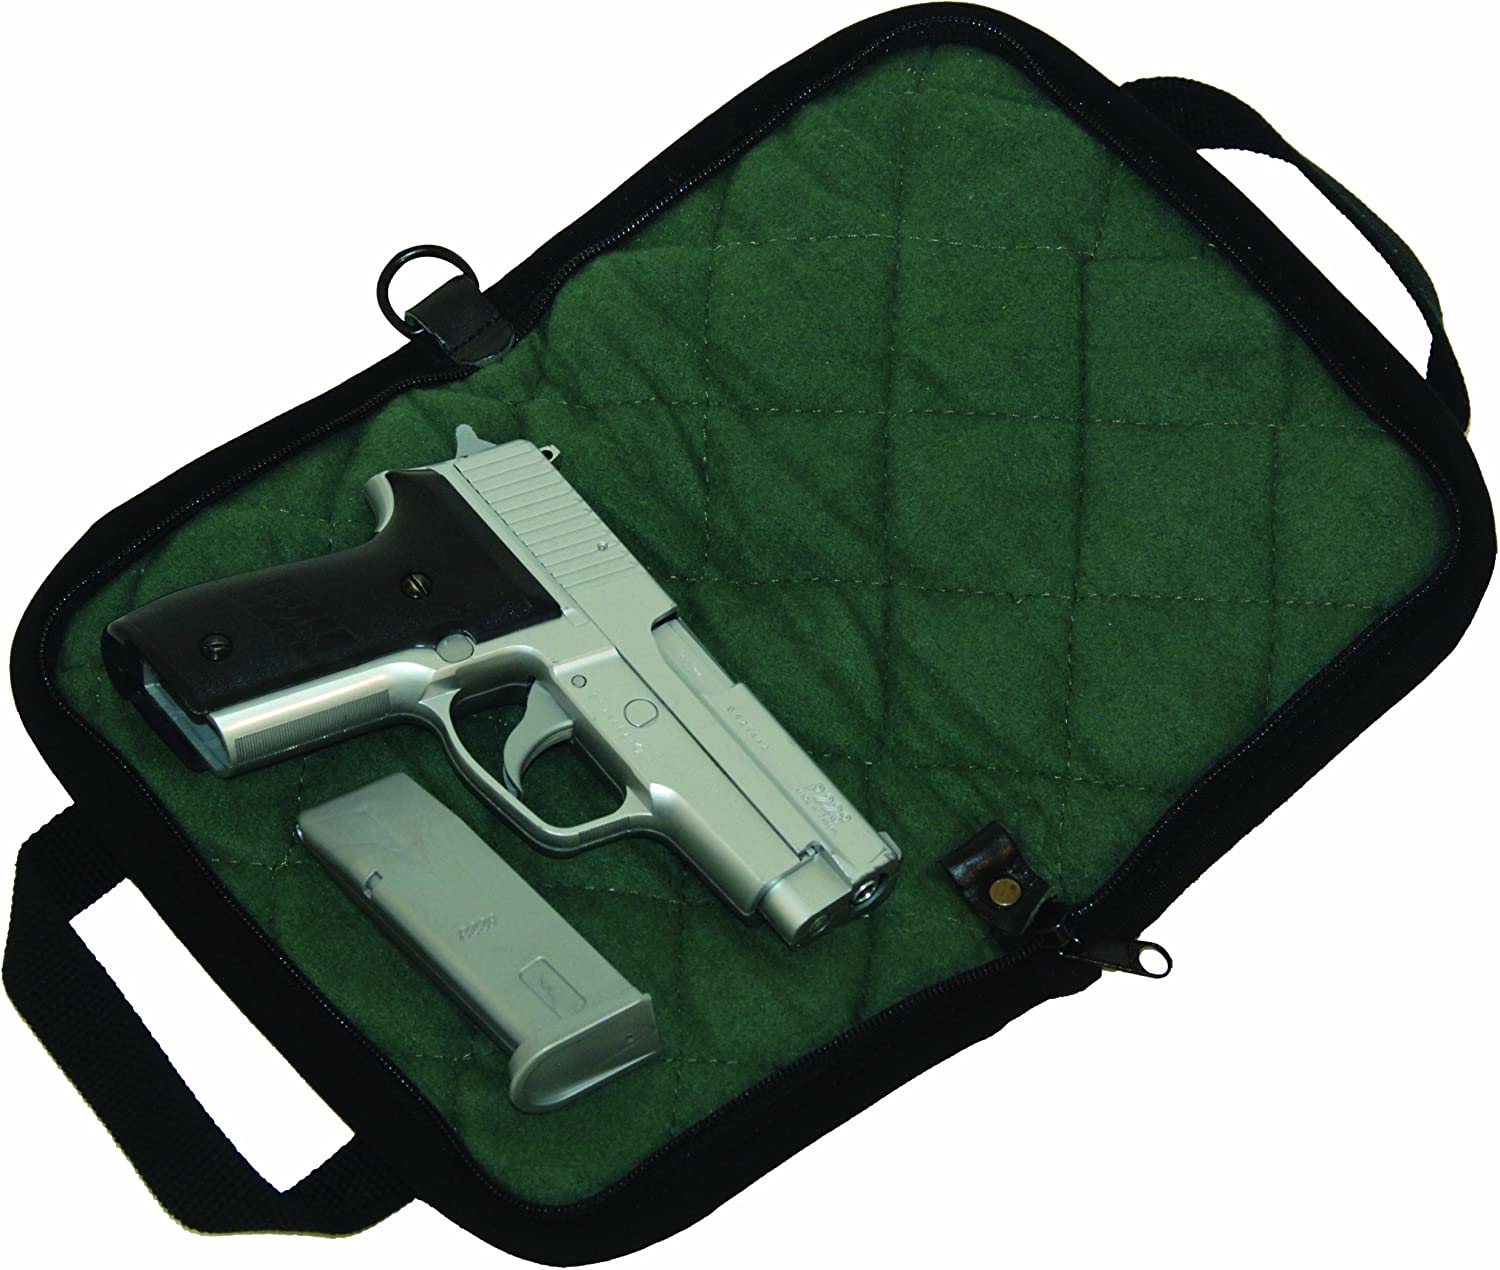 B003U7O4MA Boyt Harness Single Handgun Case (Large) 81eLSNdqWoL